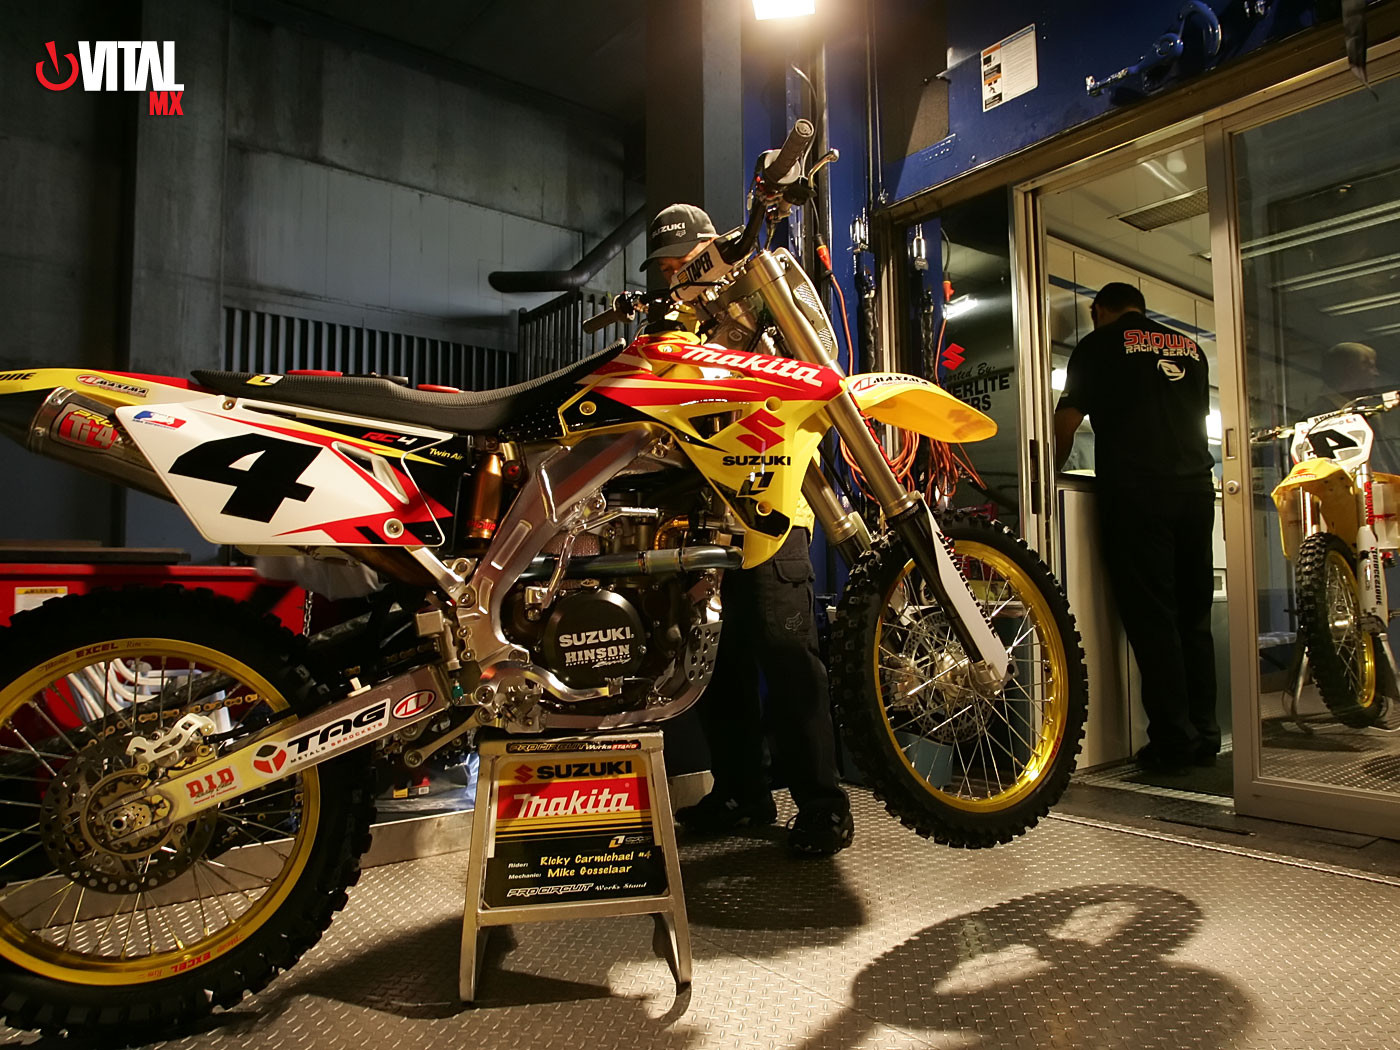 Ricky Carmichael's Suzuki RM-Z450 1400 x 1050 - 2006 Vancouver Supercross Wallpapers - Motocross Pictures - Vital MX